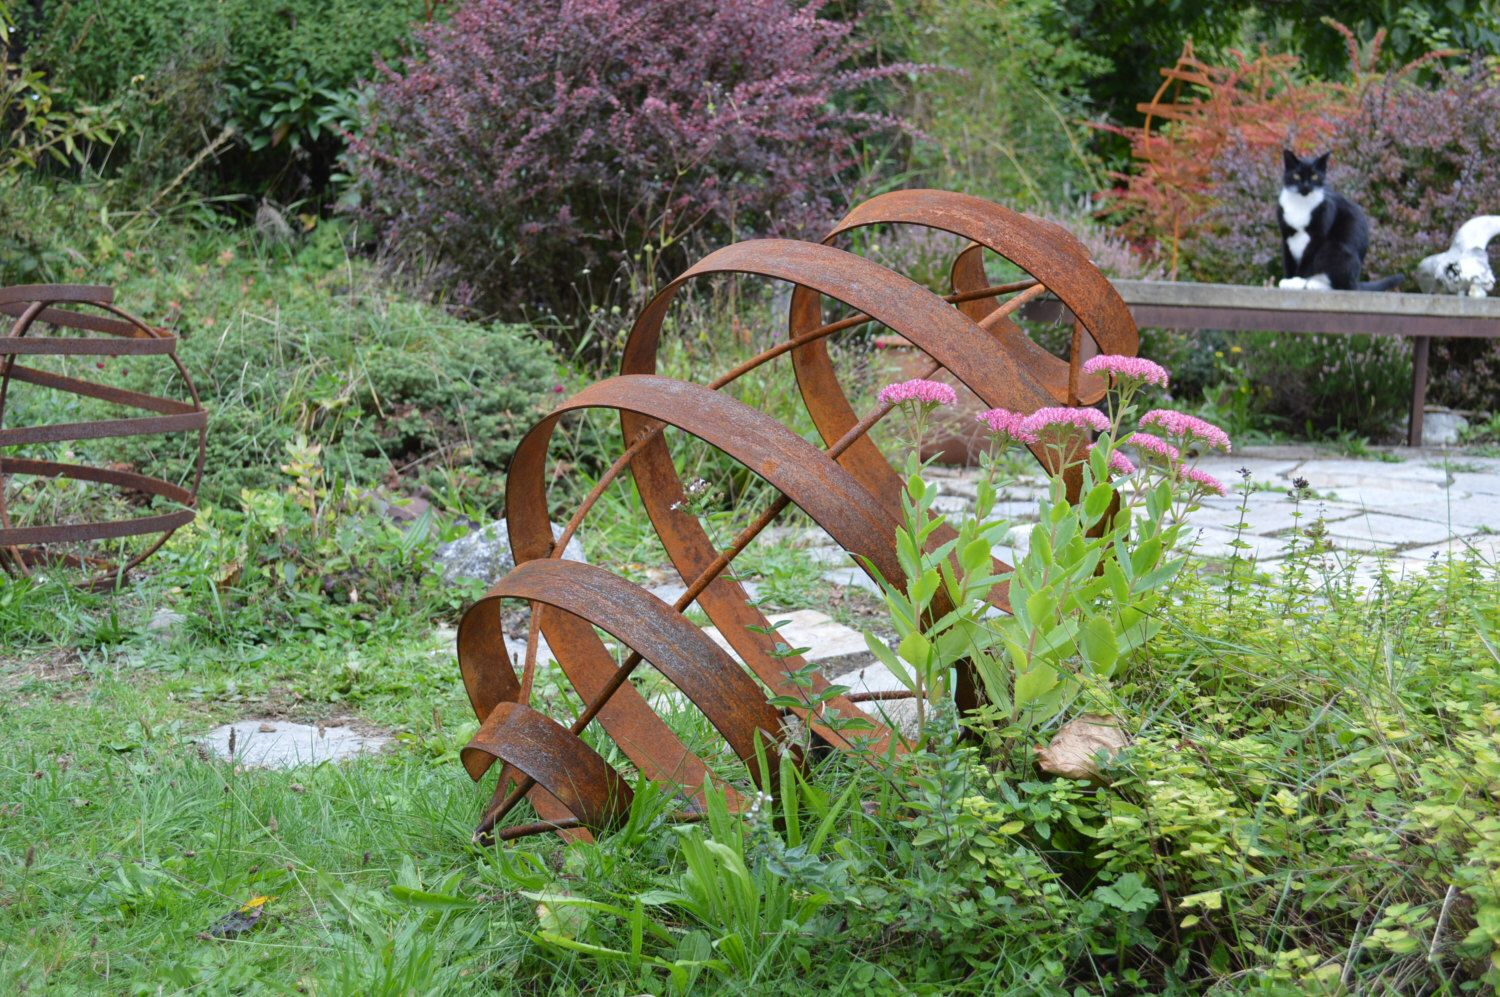 Pod Garden Sculpture Rusted Metal Art Seed Pod Pointed Elipse Yard Art By Anemonearts On Etsy H Metal Garden Art Yard Art Metal Sculptures Garden